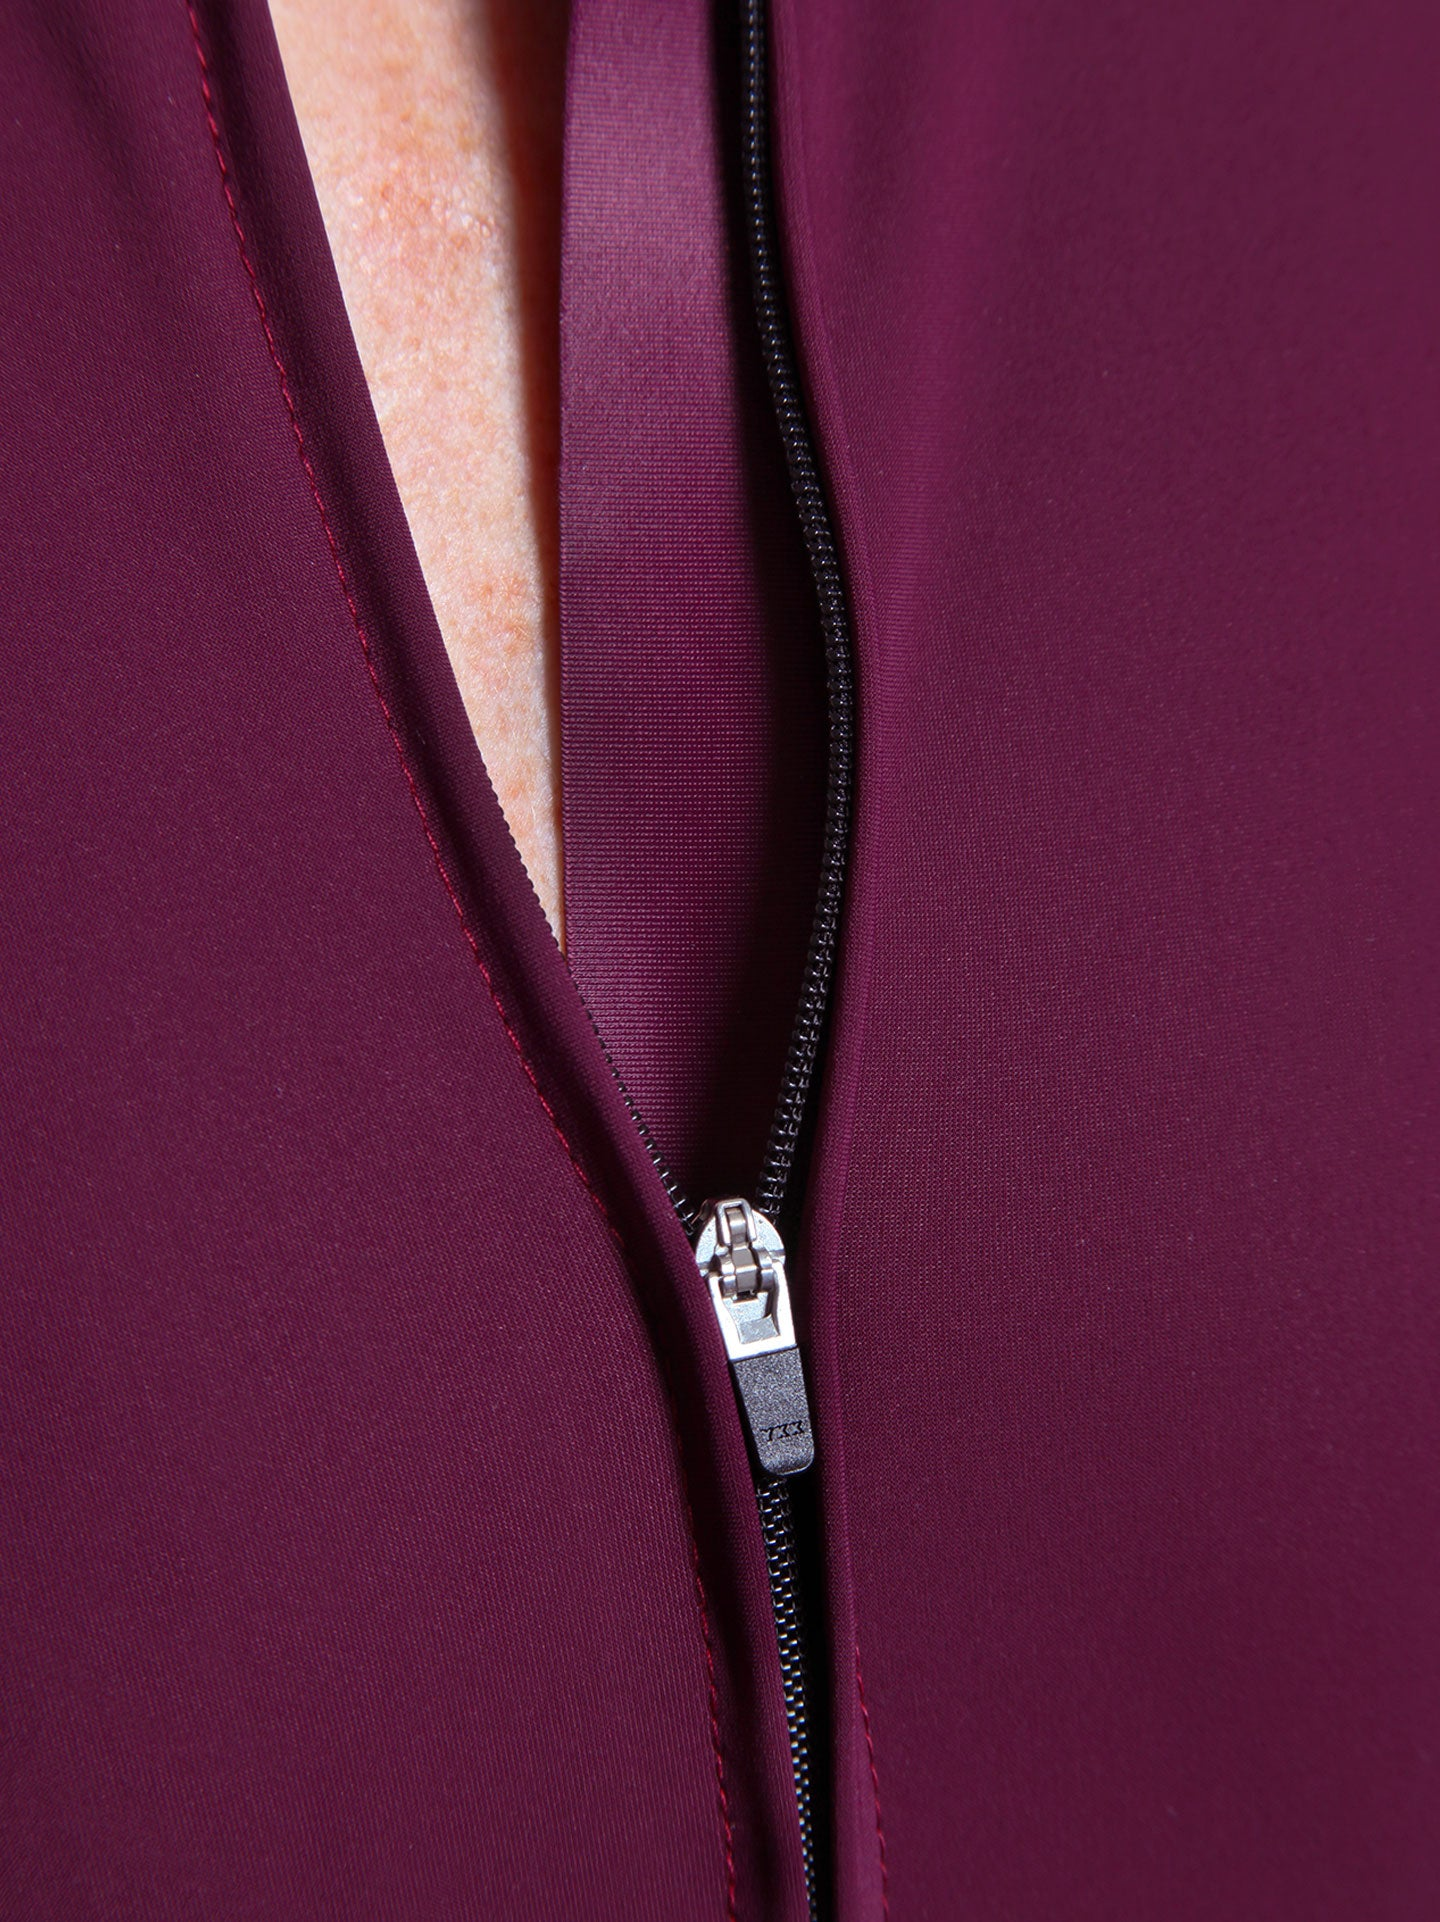 NGNM Performance Jersey Purple Aubergine detail YKK zipper